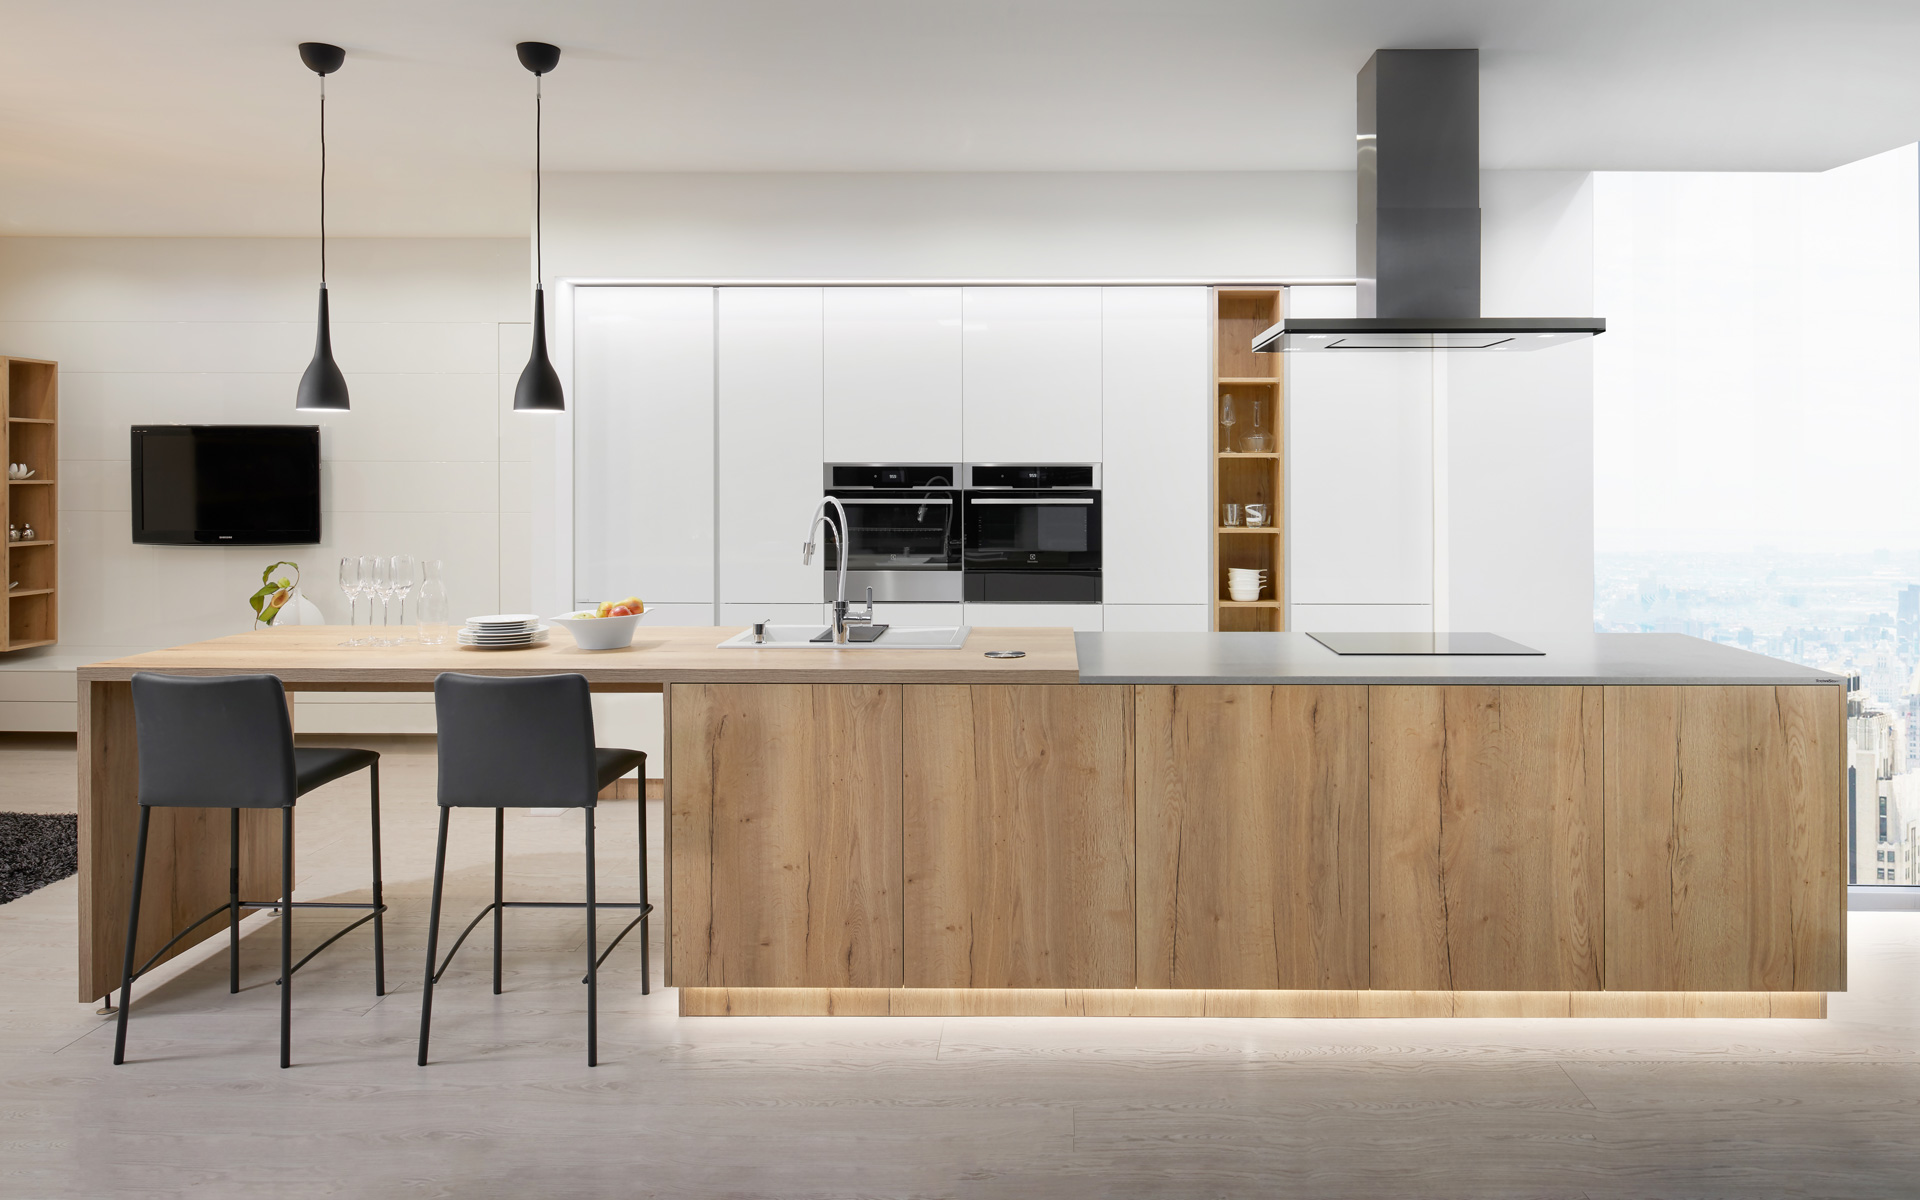 ELITE / LINE kitchen